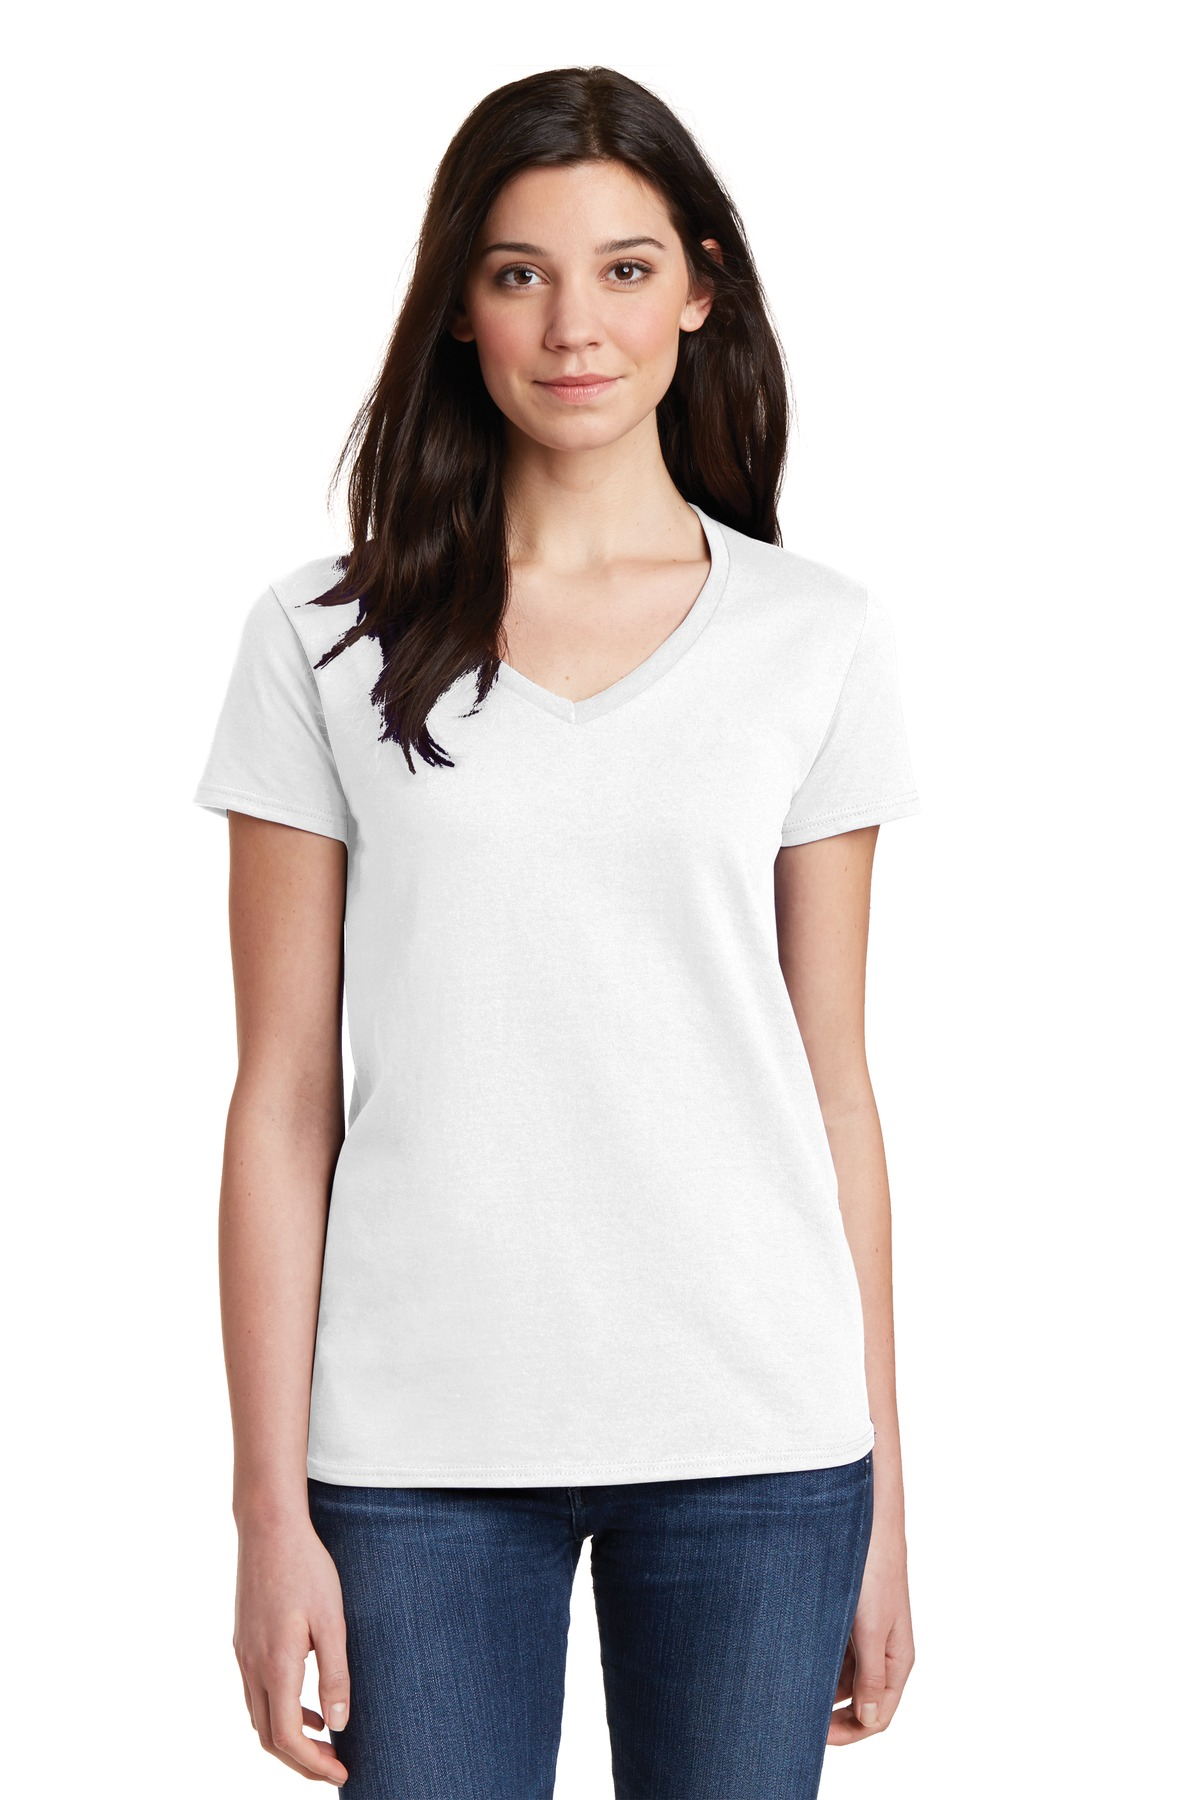 Gildan  5V00L - Ladies Heavy Cotton 100% Cotton V-Neck T-Shirt